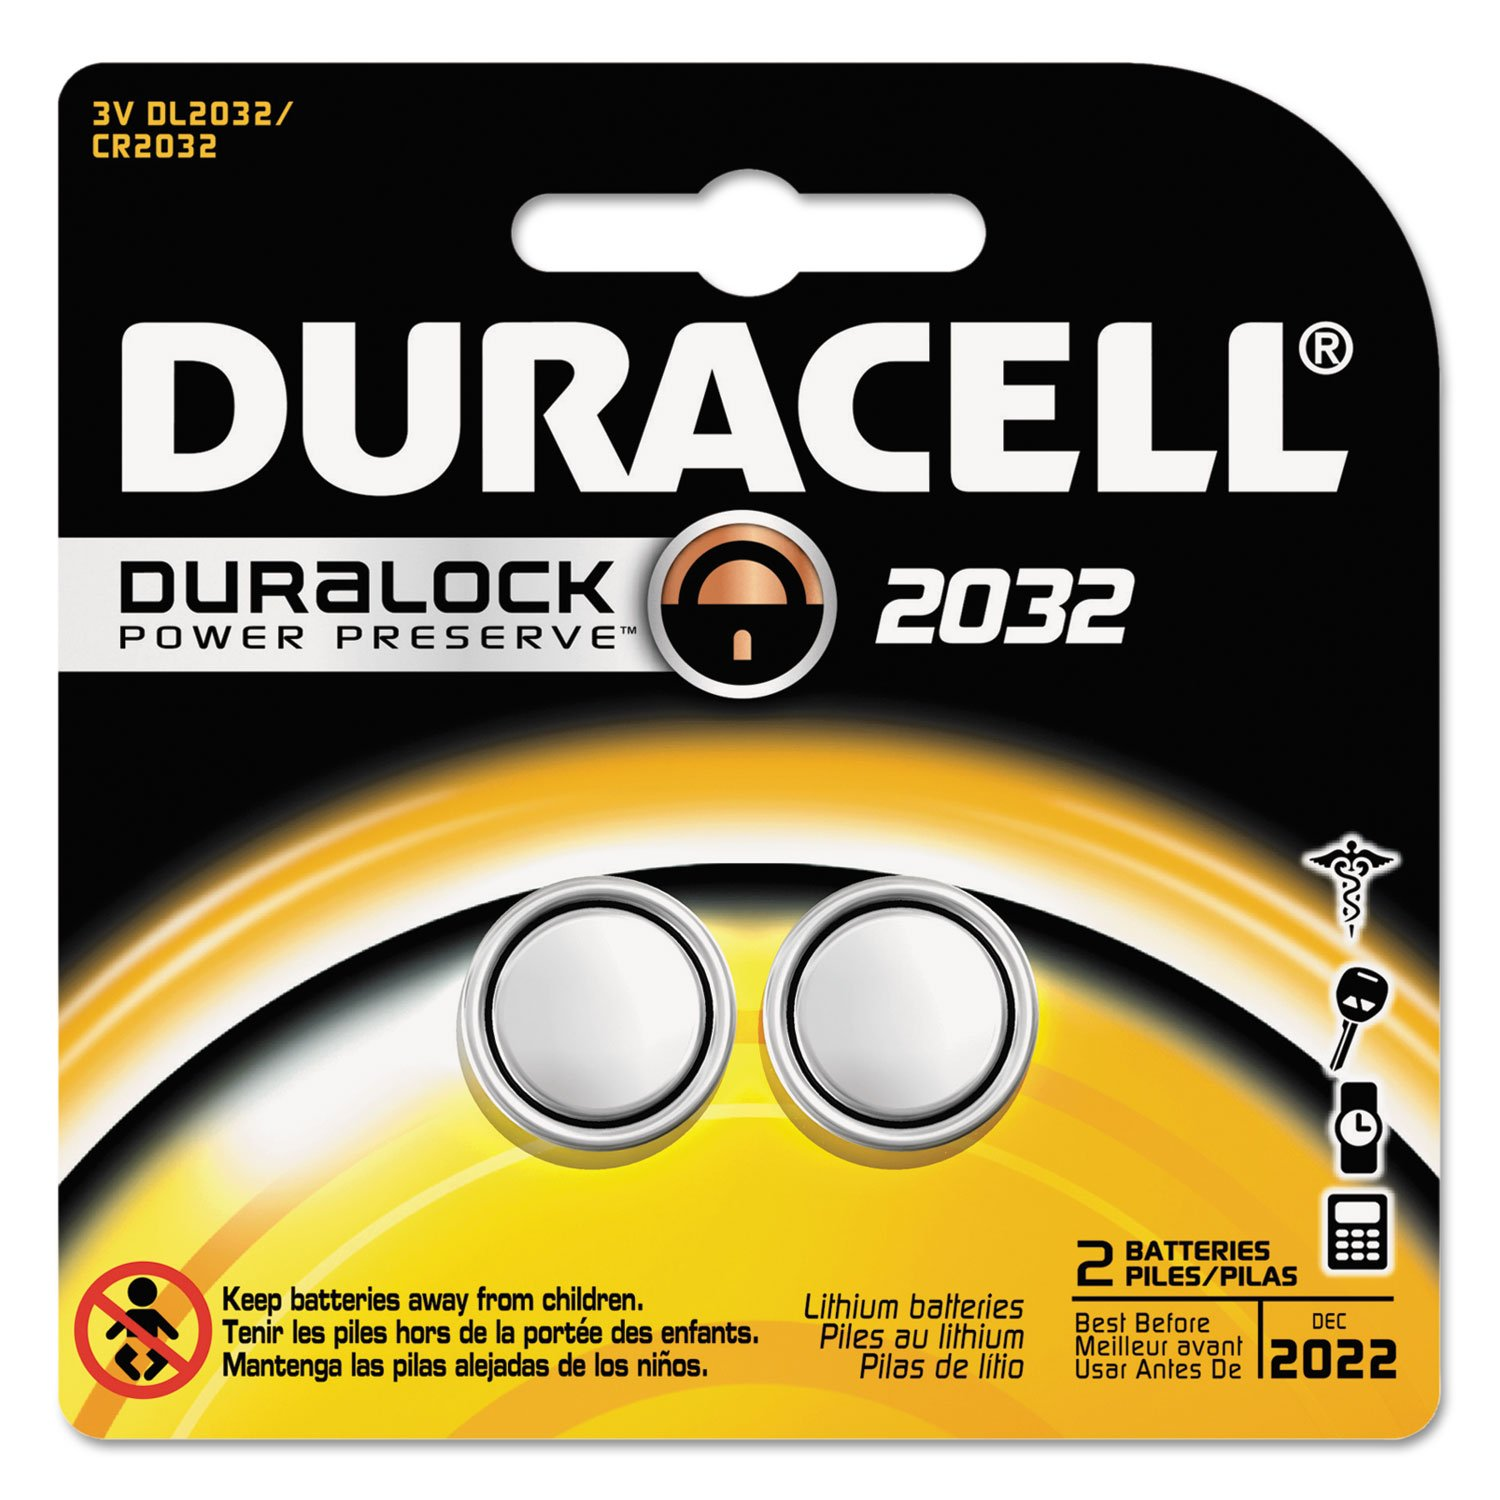 Duracell Medical Battery Cr2032 3 V Model No. 2032 Pack Of 2 DURACELL PRODUCTS COMPANY 4330210165